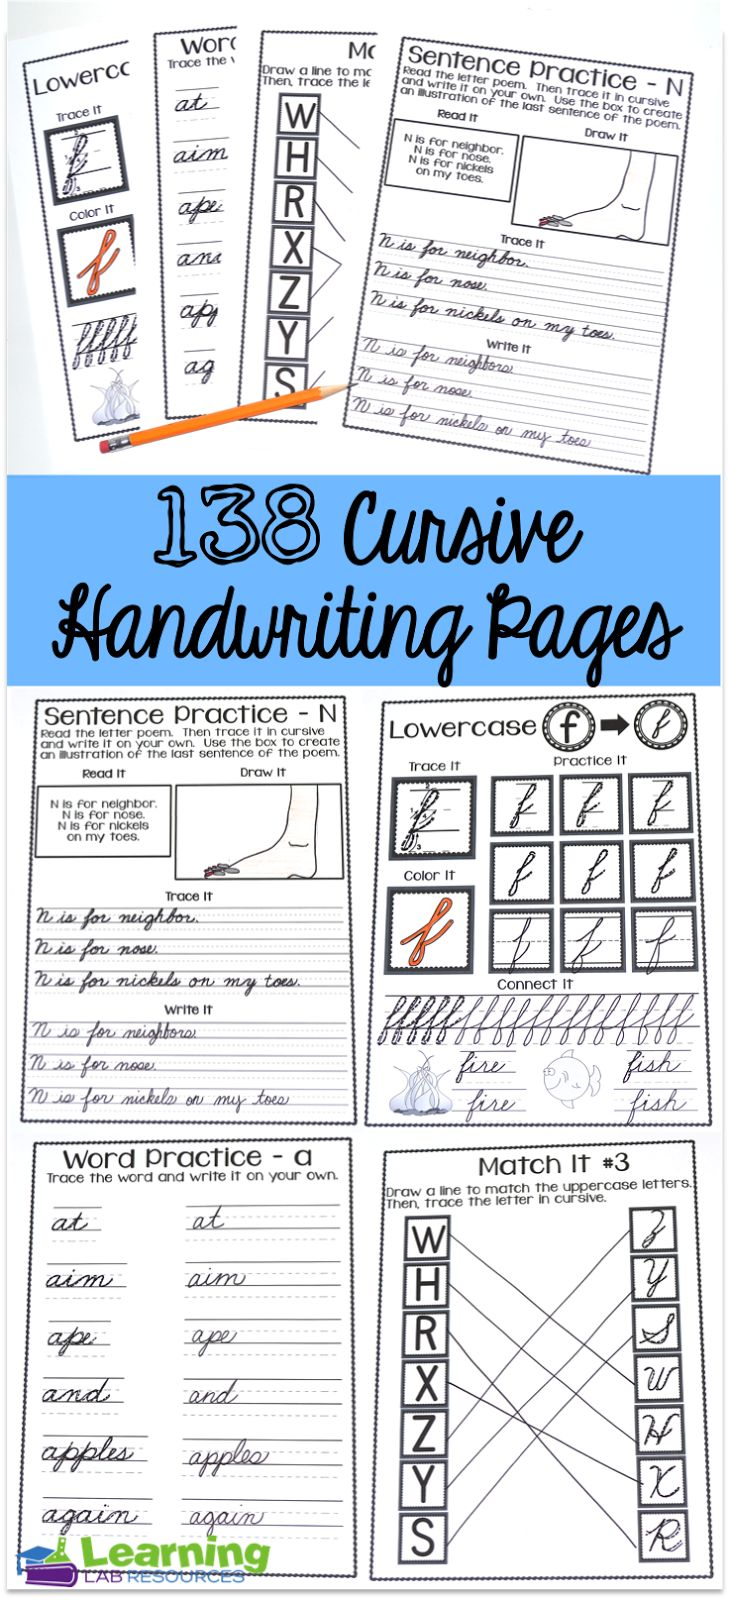 Cursive Handwriting Practice Pages. 138 pages of interactive instruction to help form individual letters, words, and sentences!